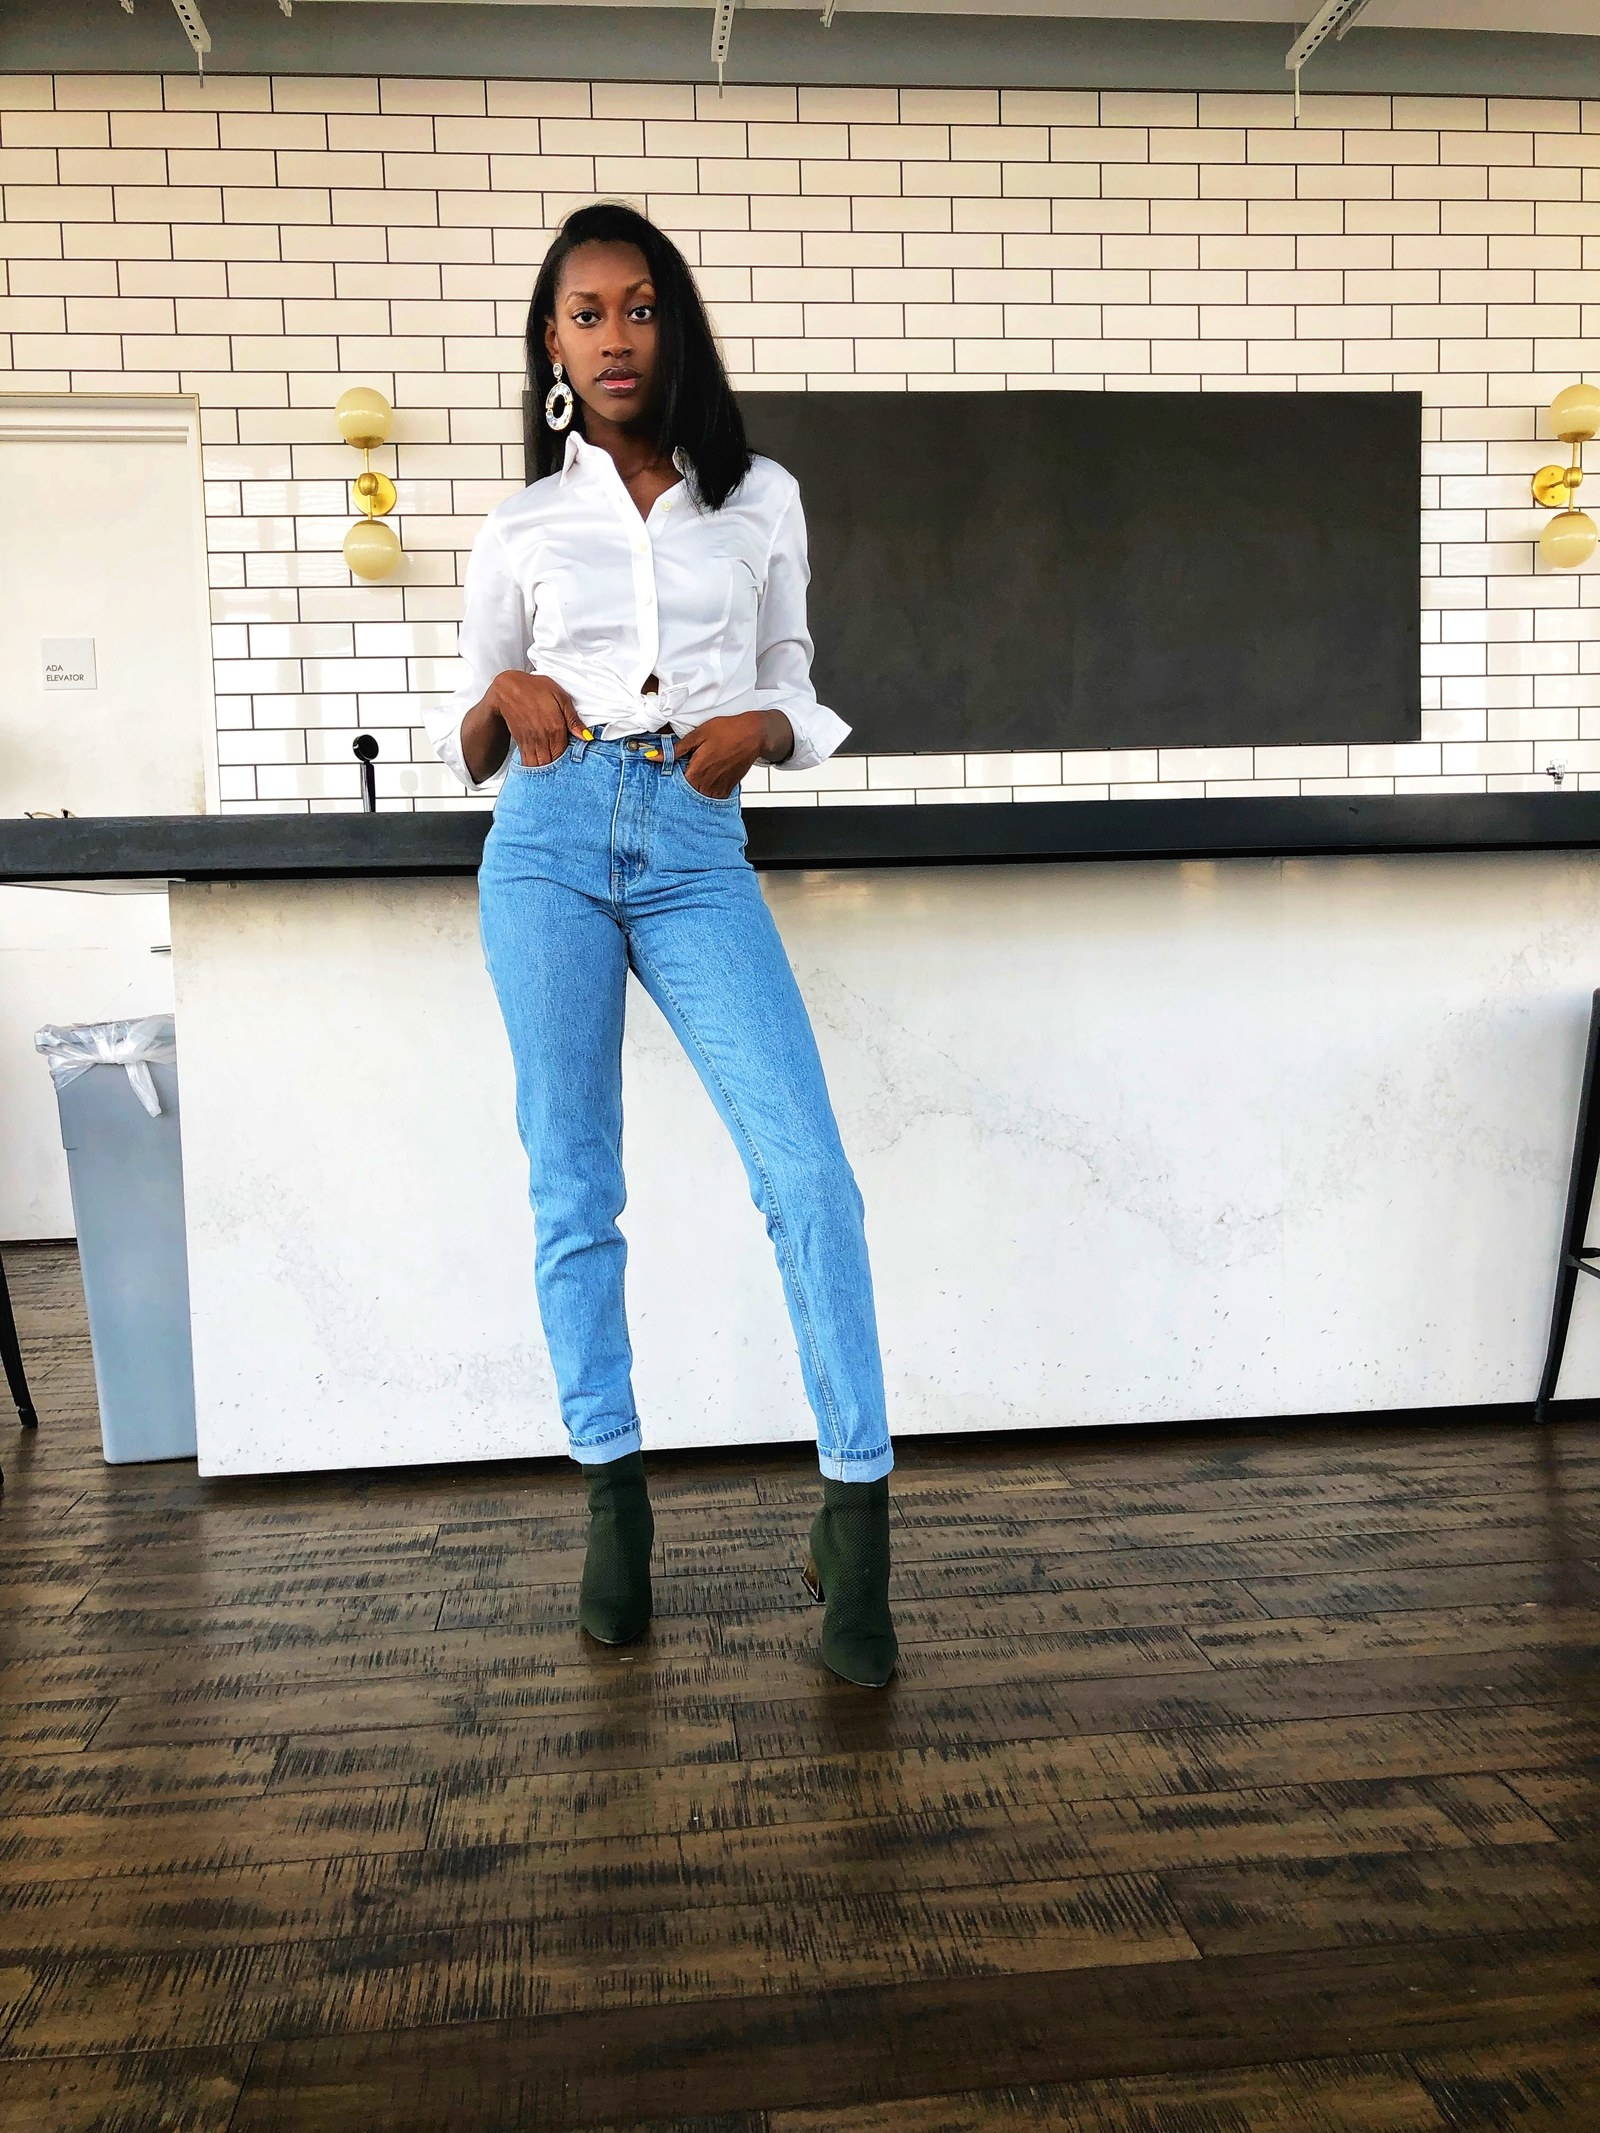 52702f8d05 Ruisin jeans are made of thick denim that ll fit perfectly snug in the hips  but still have that overall vintage feel. You can wear these with anything!